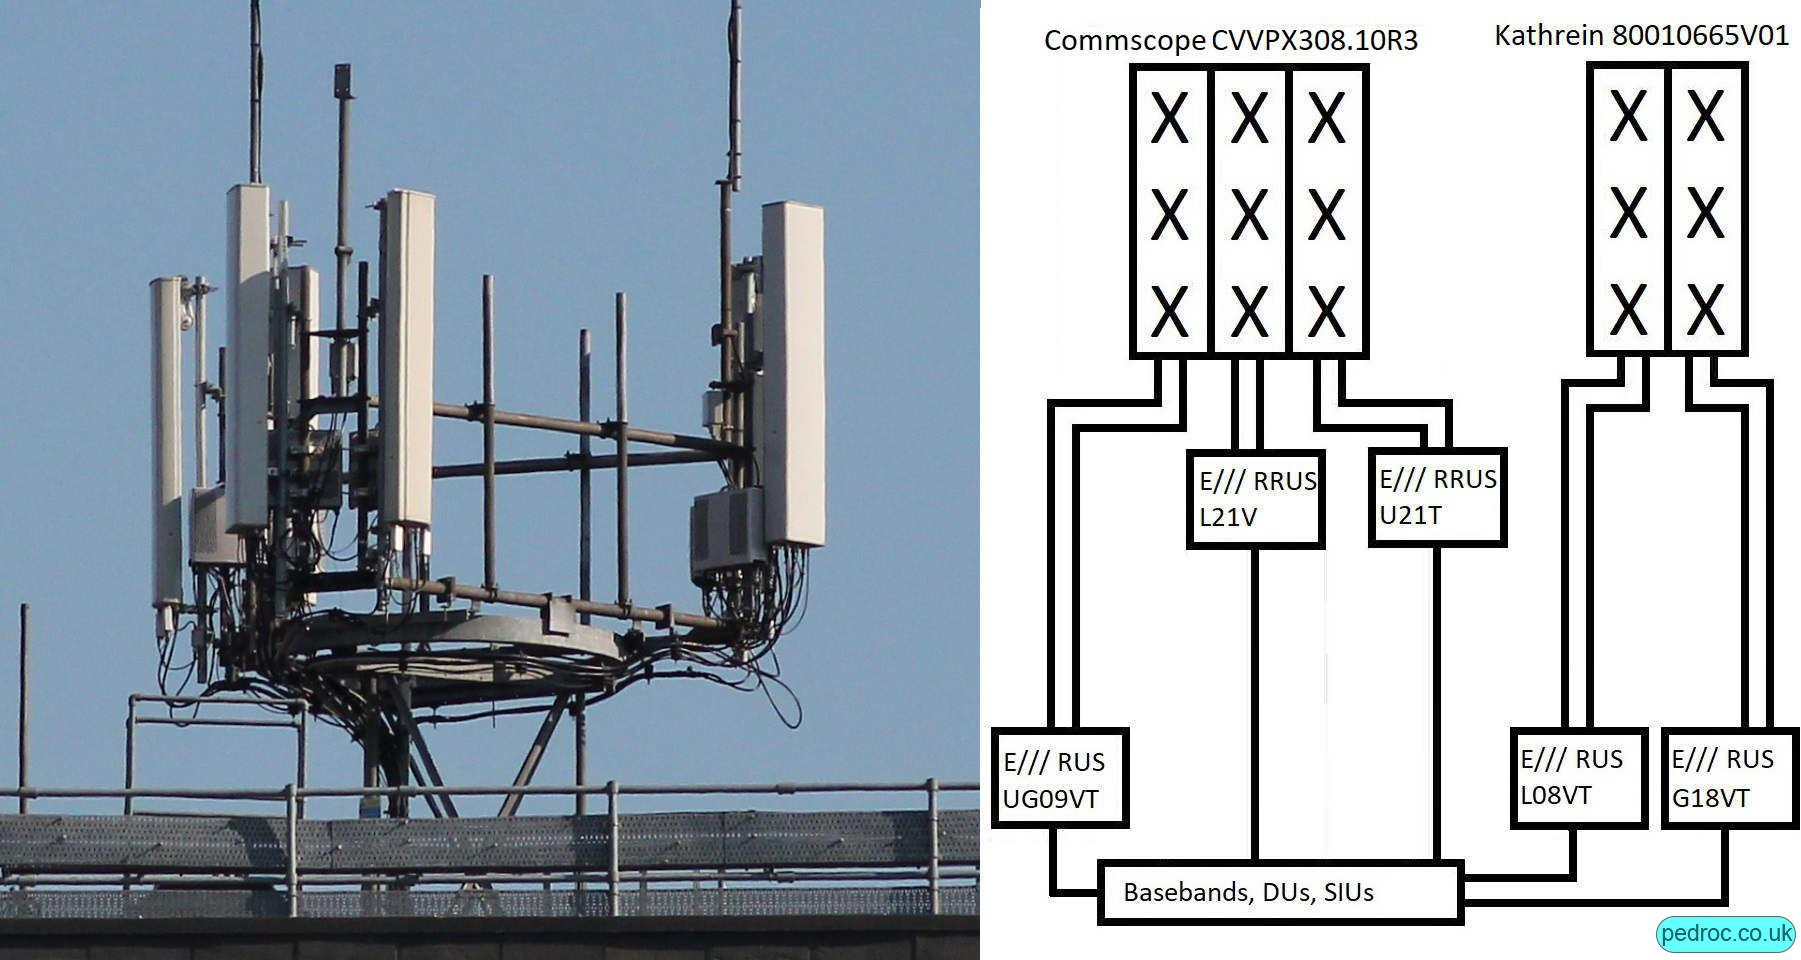 Medium-High Configuration with split 2100MHz using Ericsson RRUS12, Commscope CVVPX308.10R3 and Kathrein 80010665V01 antennas. Also G18.